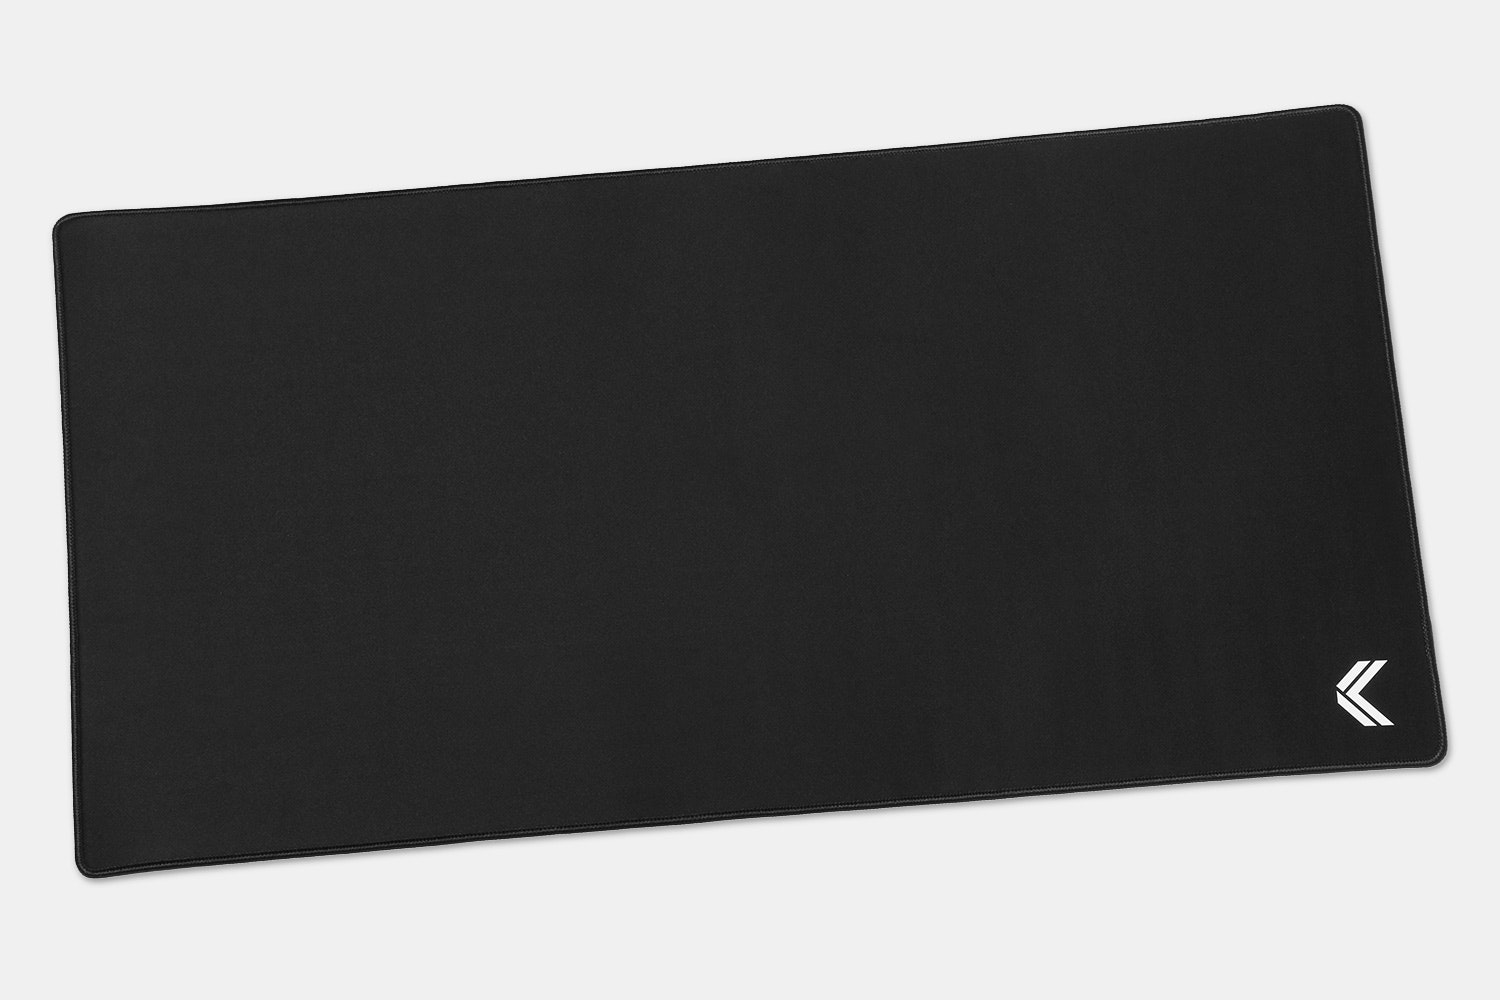 XL Mouse Pad (+ $20)